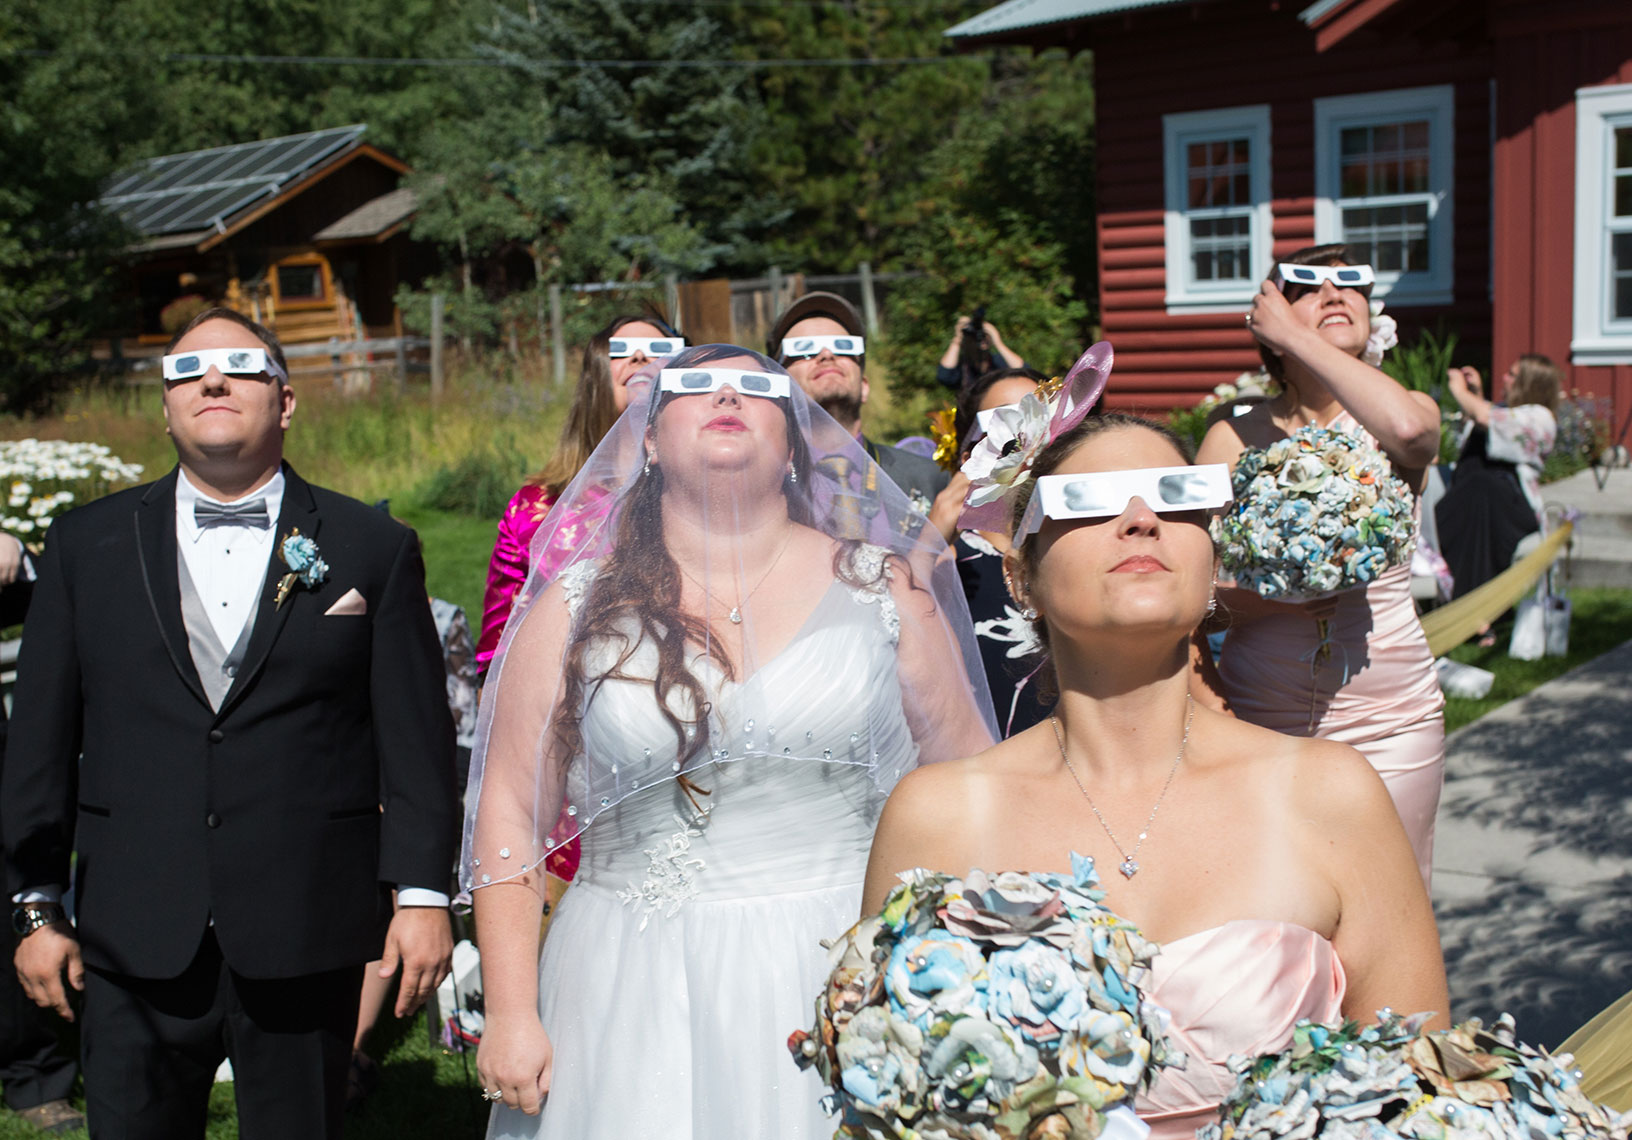 Grand Eclipse wedding at the Old Wilson School House